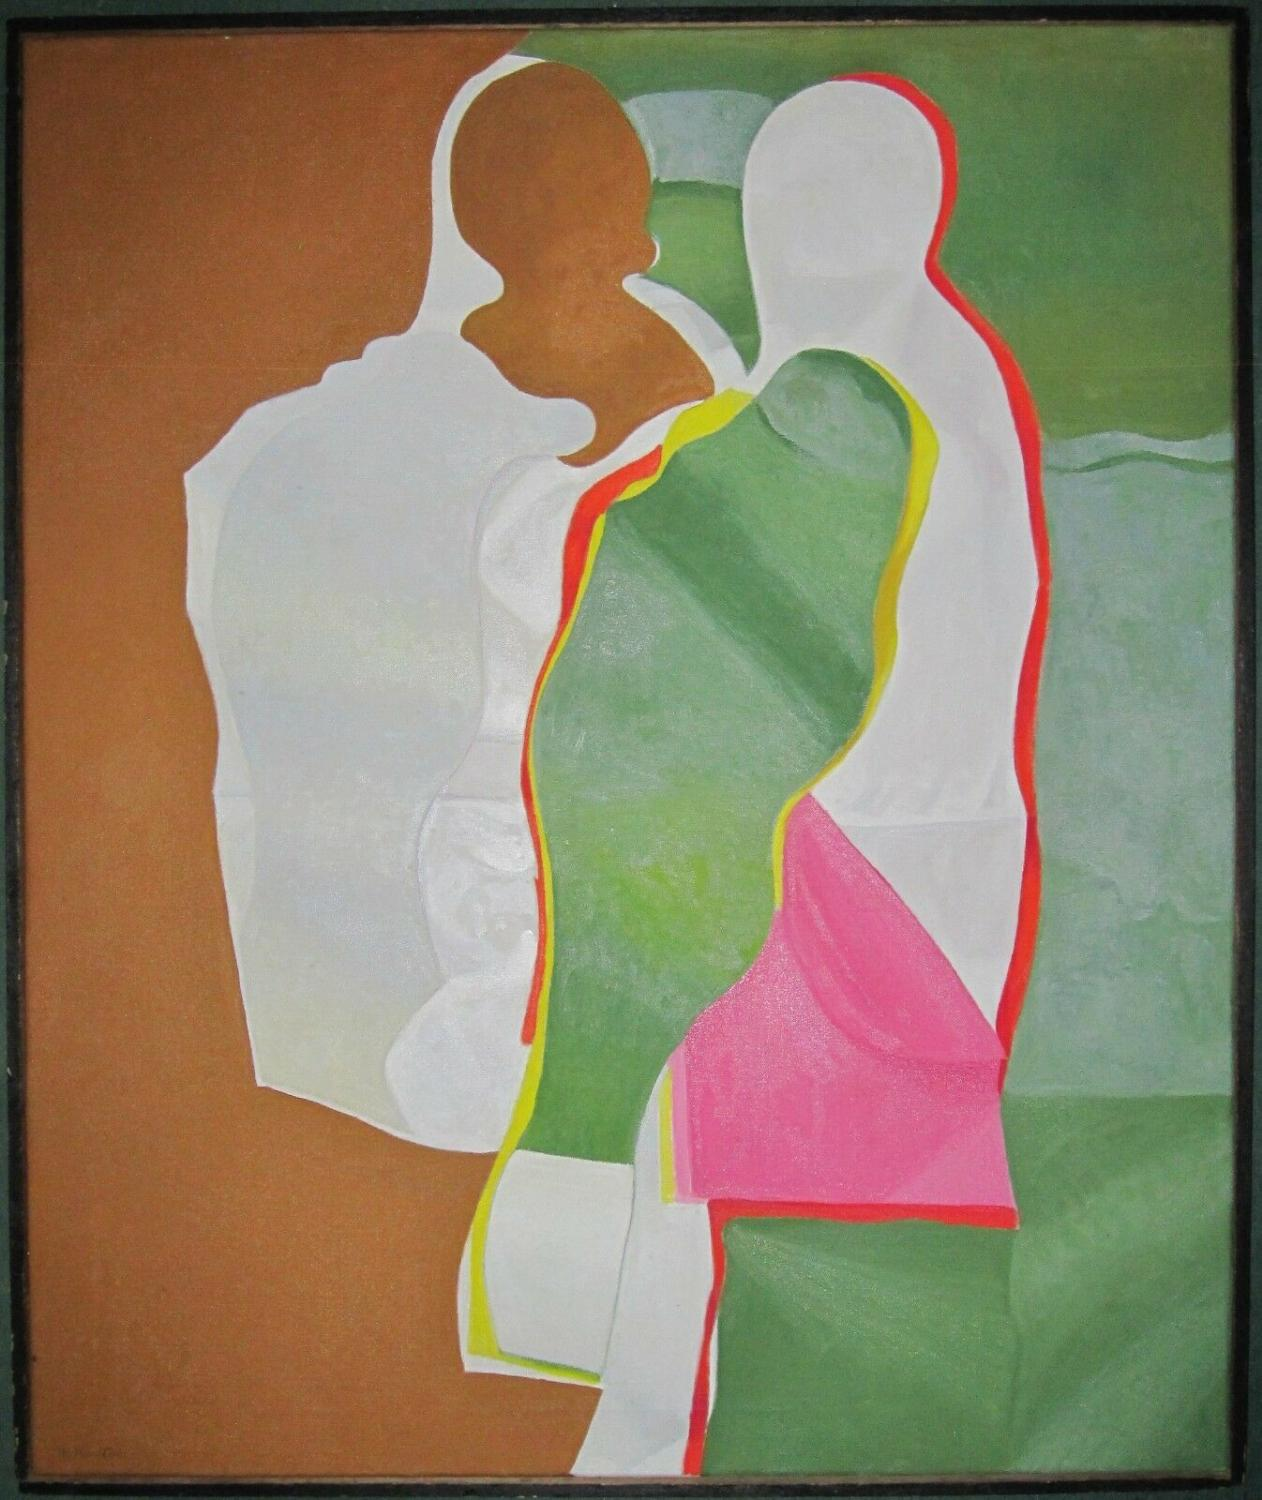 Vintage Mid Century Modern Cubism Russian American Listed Artist Ny Smithsonian 1989 Signed By Author S Arte Nbsp Nbsp Grabado Nbsp Nbsp Poster 21 East Gallery